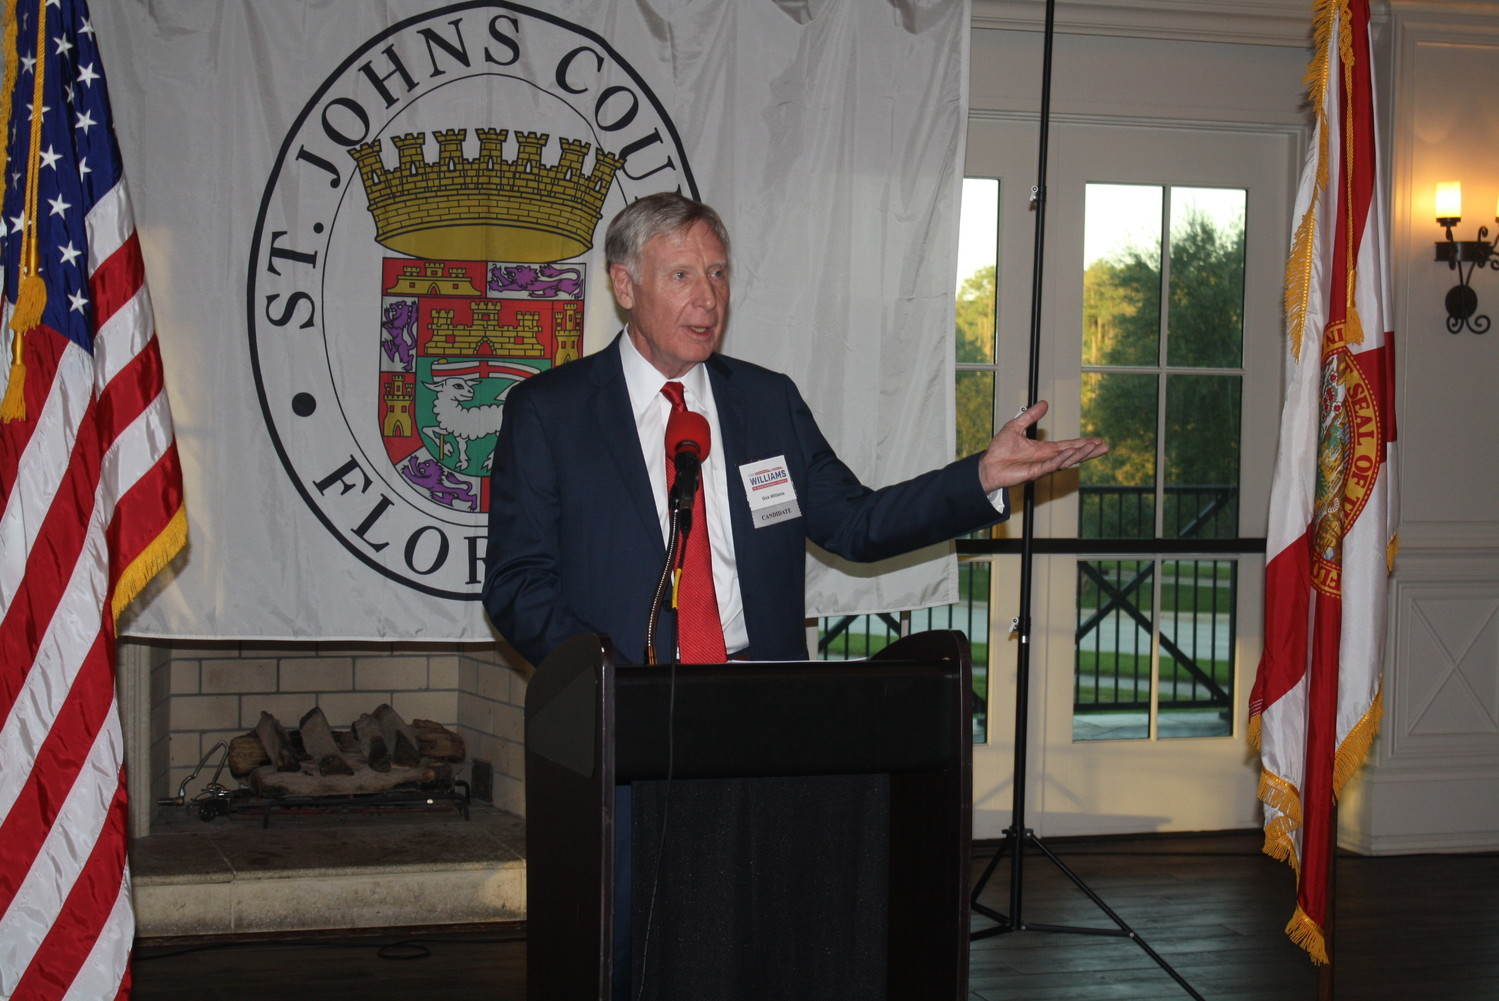 St. Johns County Commission District 4 candidate Dick Williams outlines his platform before a crowd of supporters in Nocatee Nov. 2.